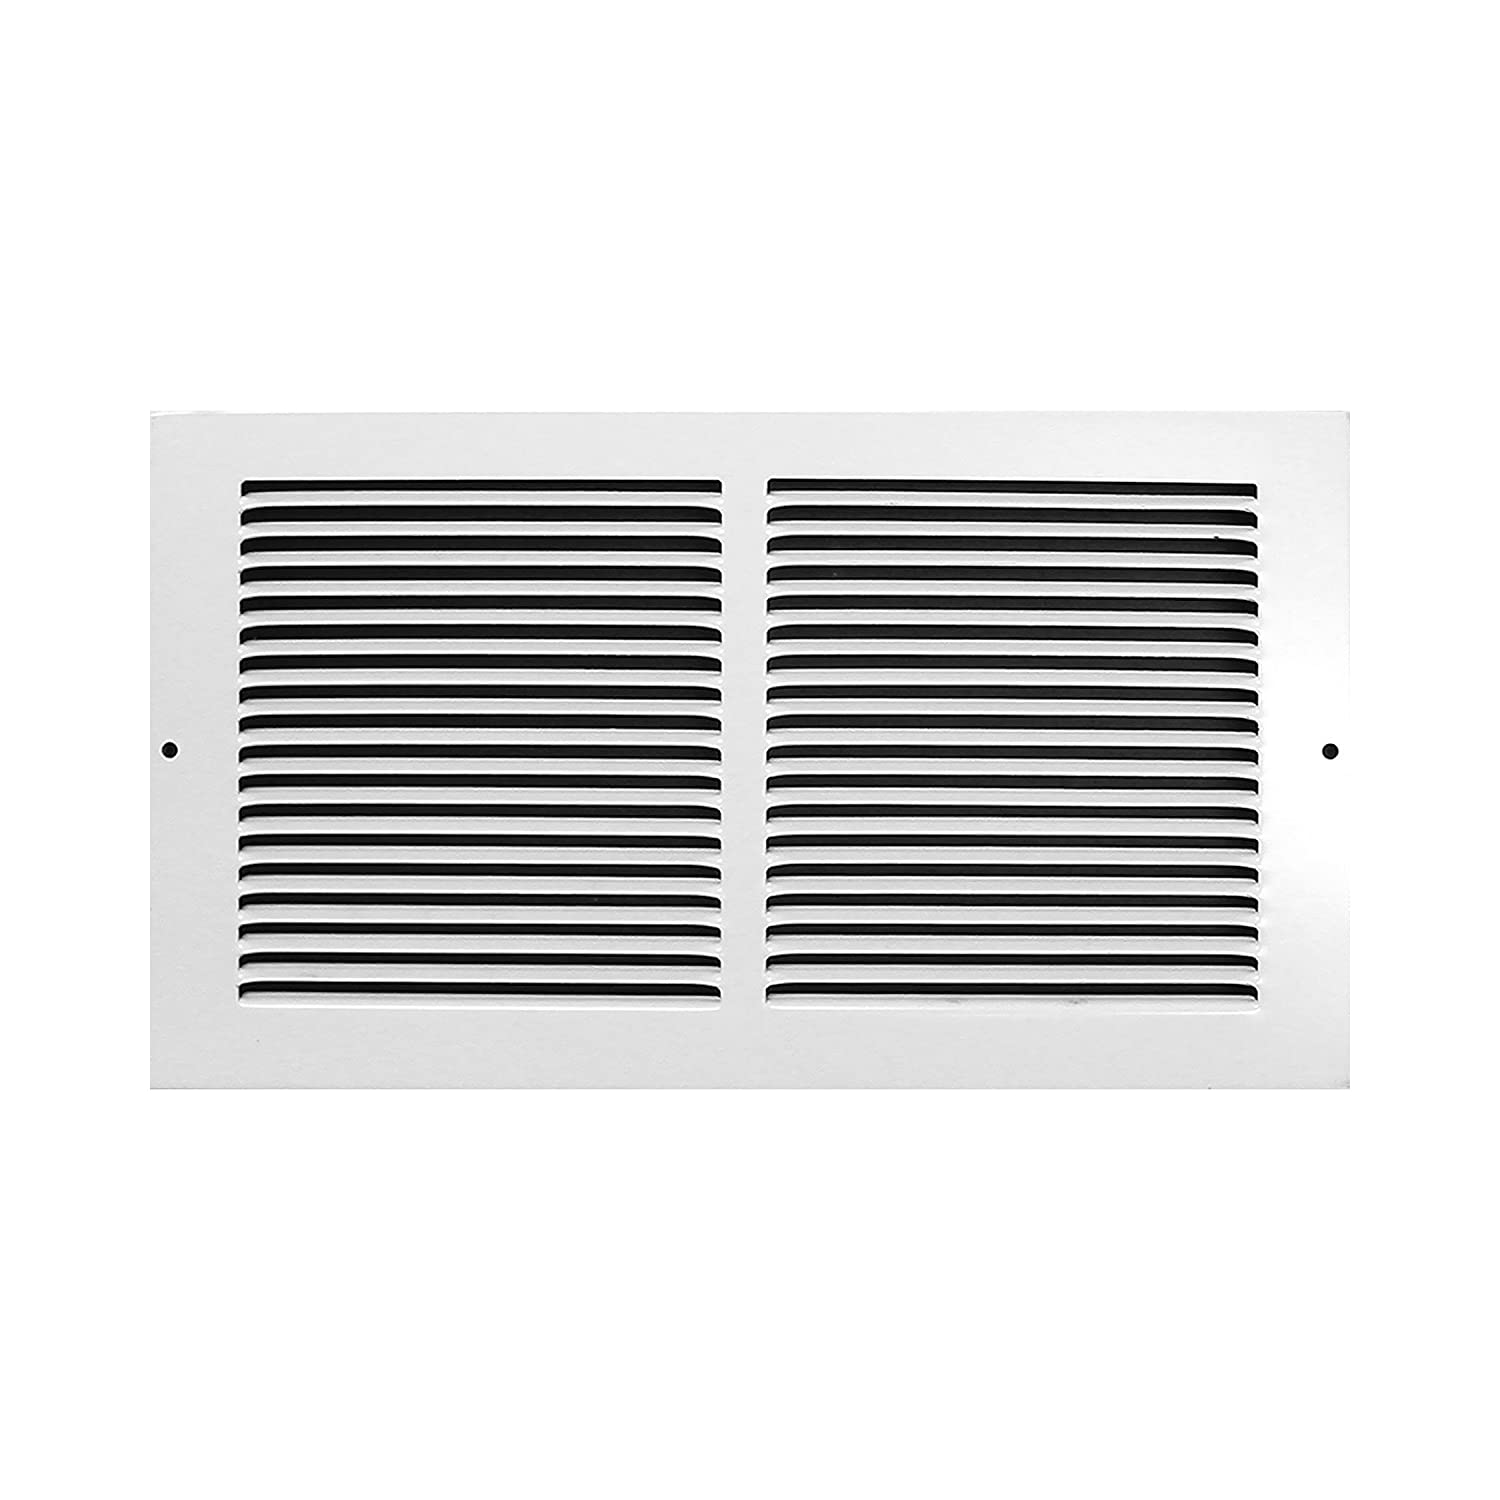 Accord Ventilation AB3BGWH126 Baseboard Grille with 1/3' Fins Louvered Design, 12' x 6'(Duct Opening Measurements), White 12 x 6(Duct Opening Measurements) Accord AB3BGWH126 Baseboard Grille with 1/3-Inch Fins Louvered Design